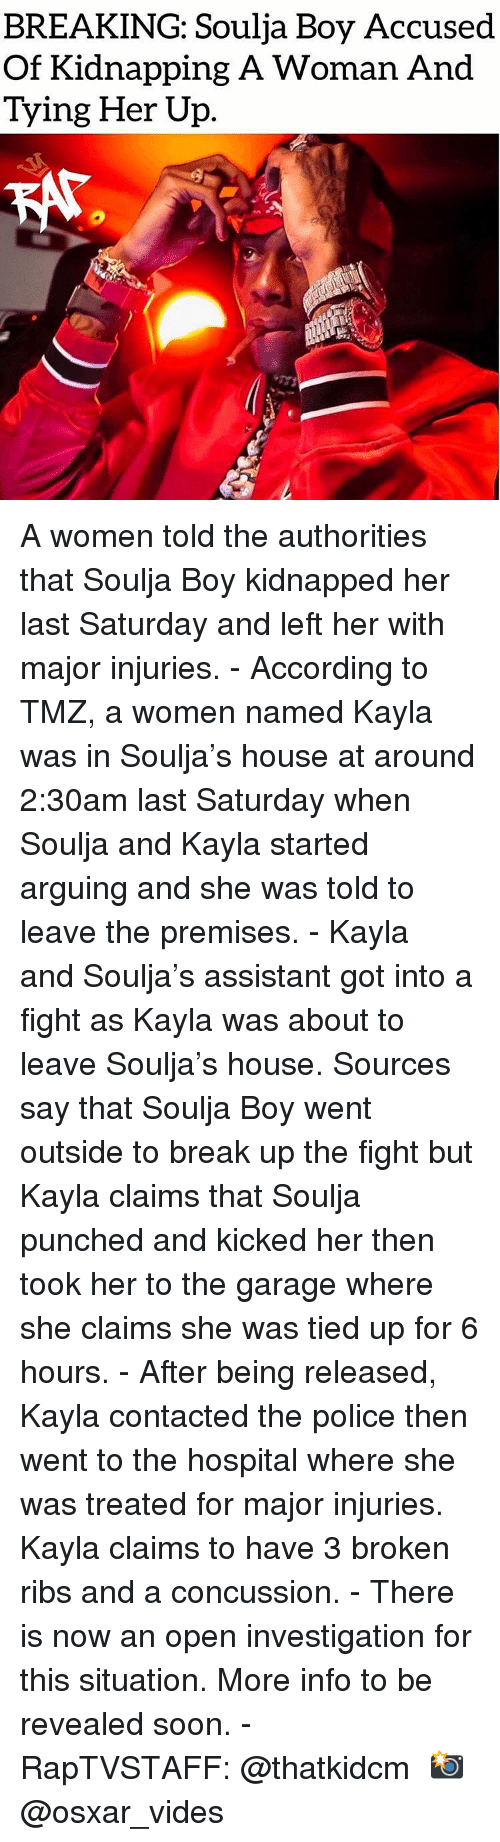 Concussion, Memes, and Police: BREAKING: Soulja Boy Accused  Of Kidnapping A Woman And  Tying Her Up. A women told the authorities that Soulja Boy kidnapped her last Saturday and left her with major injuries.⁣ -⁣ According to TMZ, a women named Kayla was in Soulja's house at around 2:30am last Saturday when Soulja and Kayla started arguing and she was told to leave the premises.⁣ -⁣ Kayla and Soulja's assistant got into a fight as Kayla was about to leave Soulja's house. Sources say that Soulja Boy went outside to break up the fight but Kayla claims that Soulja punched and kicked her then took her to the garage where she claims she was tied up for 6 hours.⁣ -⁣ After being released, Kayla contacted the police then went to the hospital where she was treated for major injuries. Kayla claims to have 3 broken ribs and a concussion.⁣ -⁣ There is now an open investigation for this situation. More info to be revealed soon.⁣ -⁣ RapTVSTAFF: @thatkidcm⁣ 📸 @osxar_vides